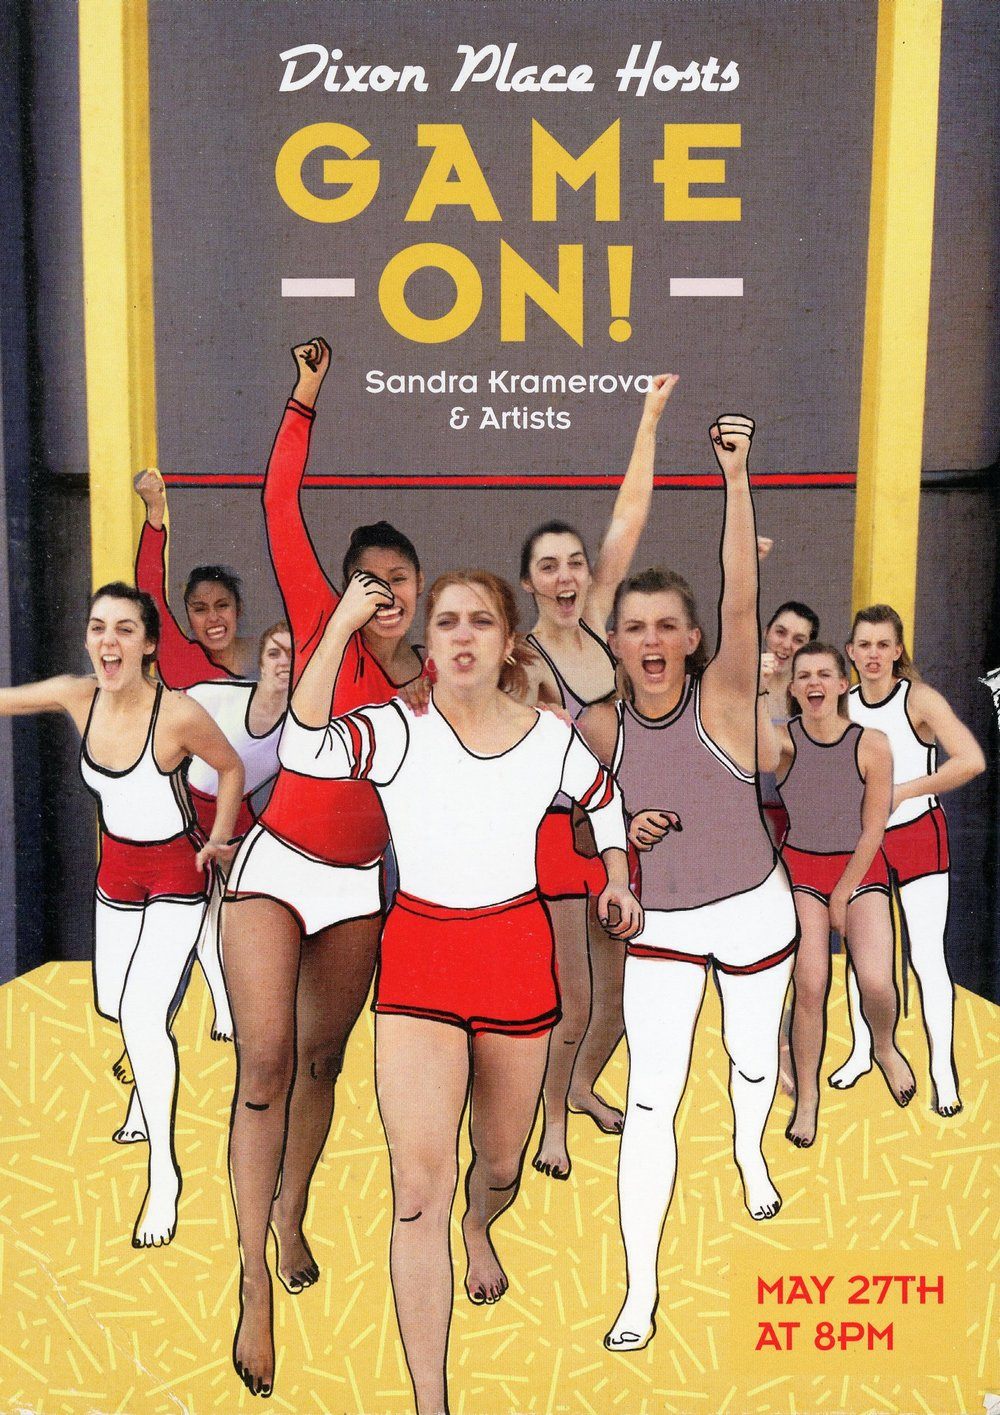 The poster from GAME ON!, a live dance performance that draws inspiration from the Czechoslovakian Spartakiads. (Courtesy Sandra Kramerová)